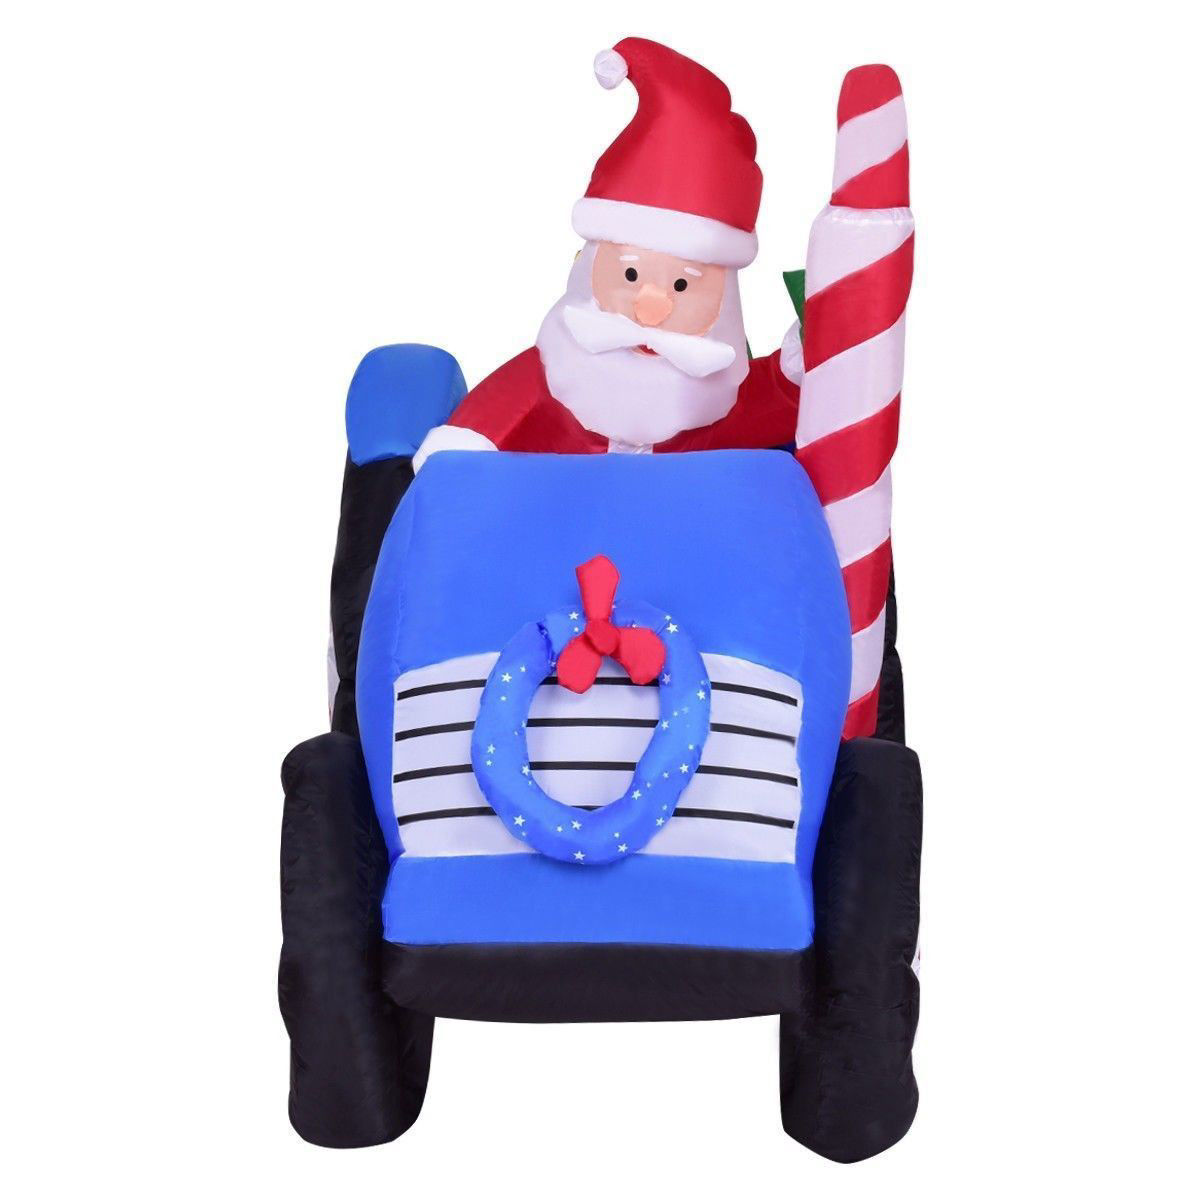 Picture of Christmas Decor 6' Inflatable Santa Claus on Truck